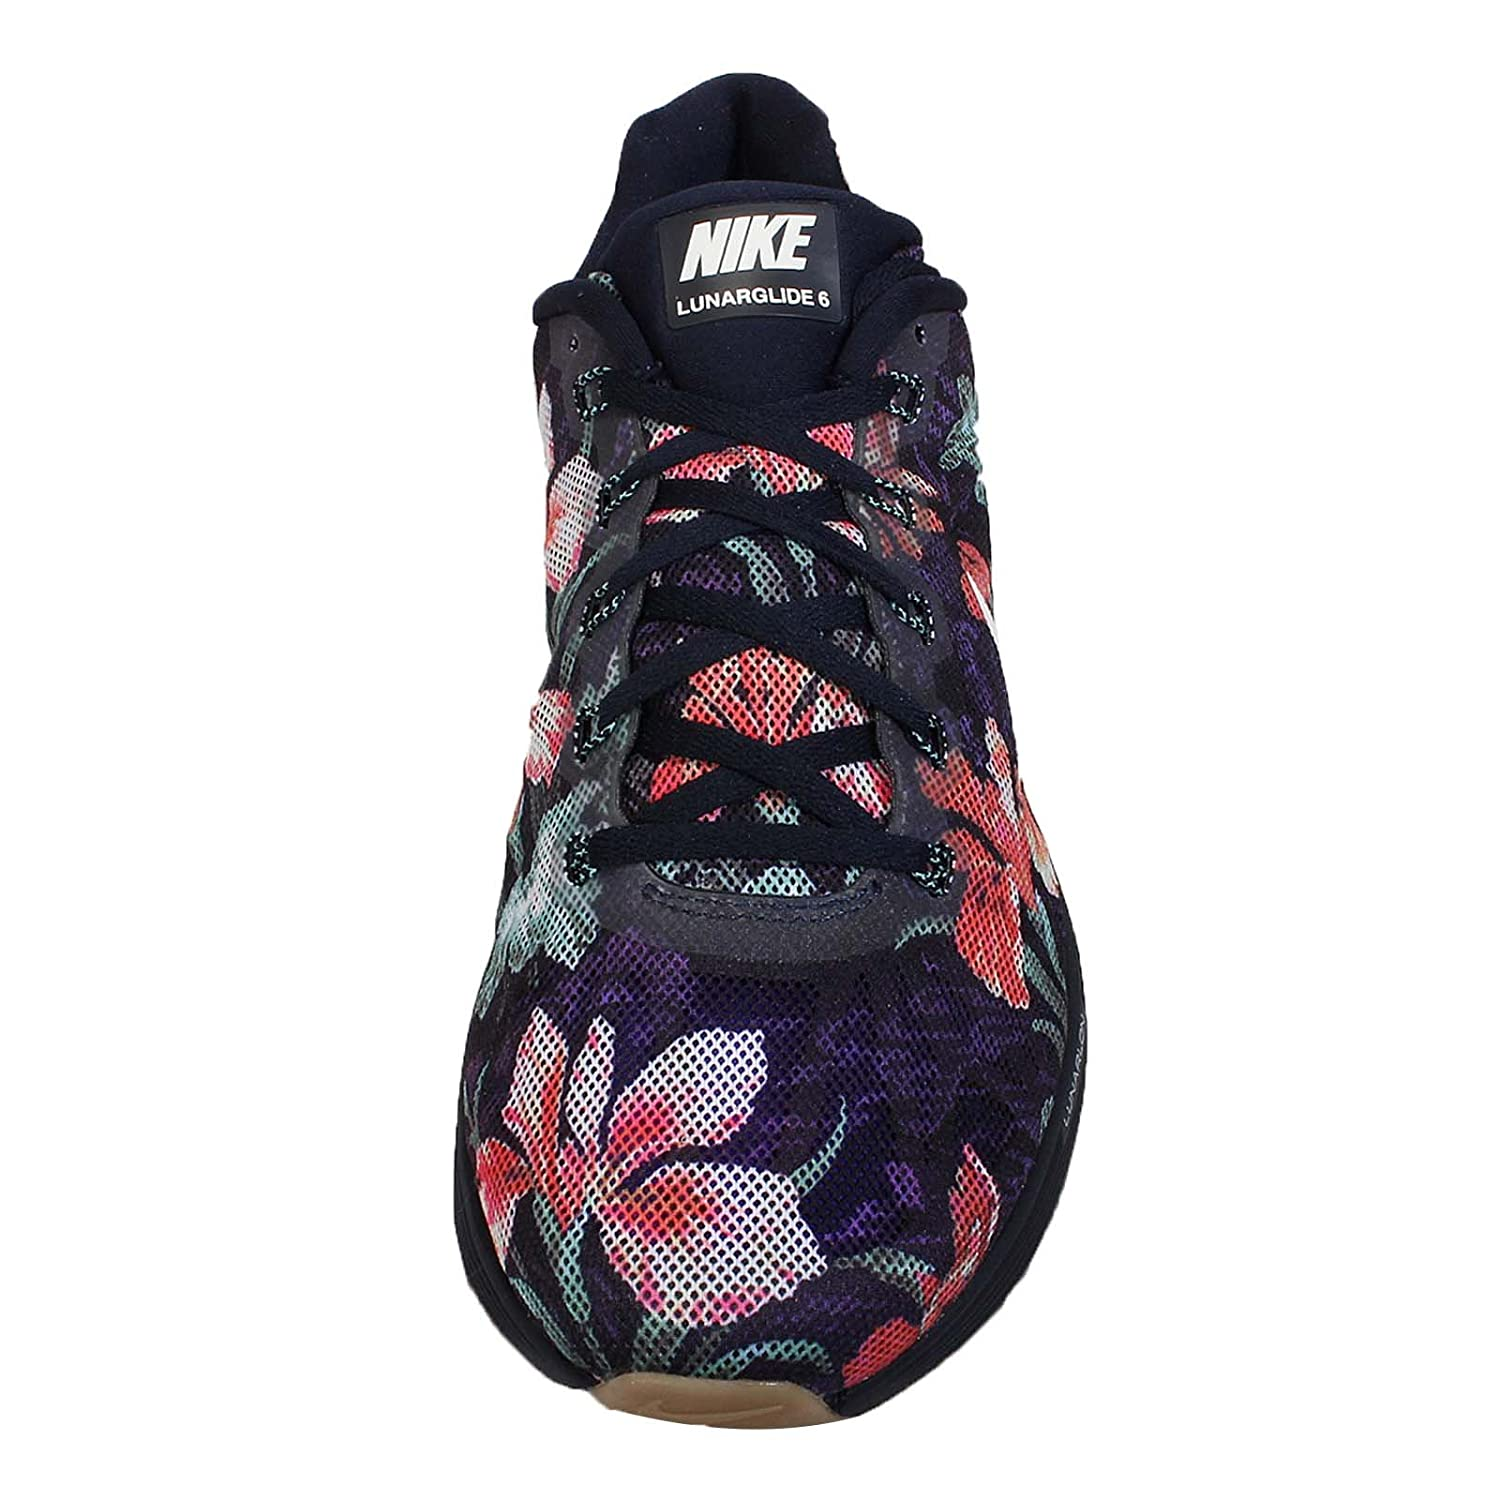 premium selection 9fd52 20206 nike lunarglide 6 photosynth mens running trainers 776259 sneakers shoes  (uk 8 us 9 eu 42.5, dark obsidian summit white light aqua 401)   Amazon.co.uk  Shoes ...